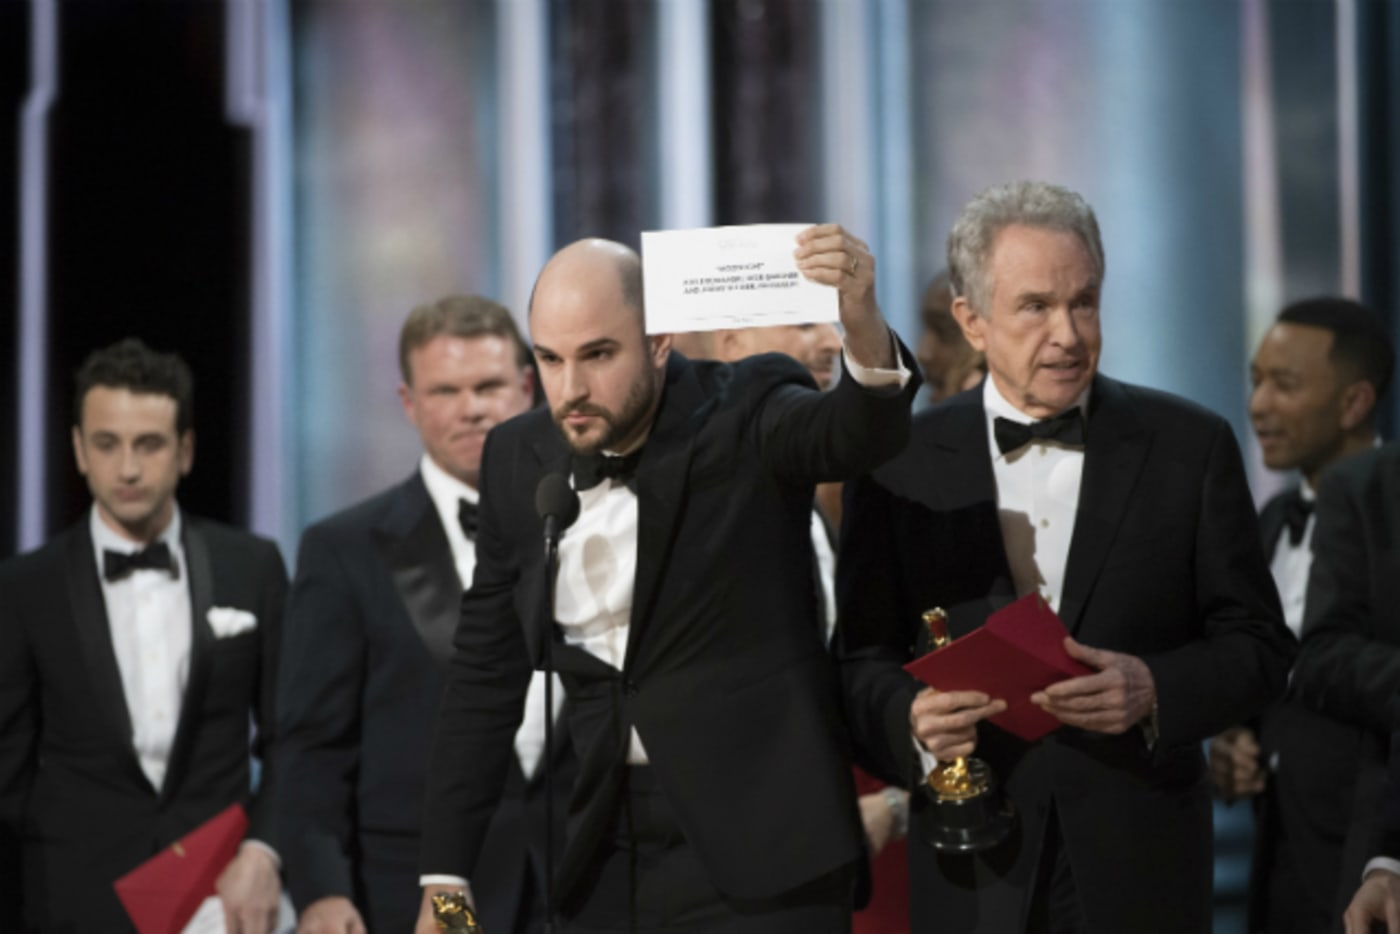 'Moonlight' wins Oscar for Best Picture